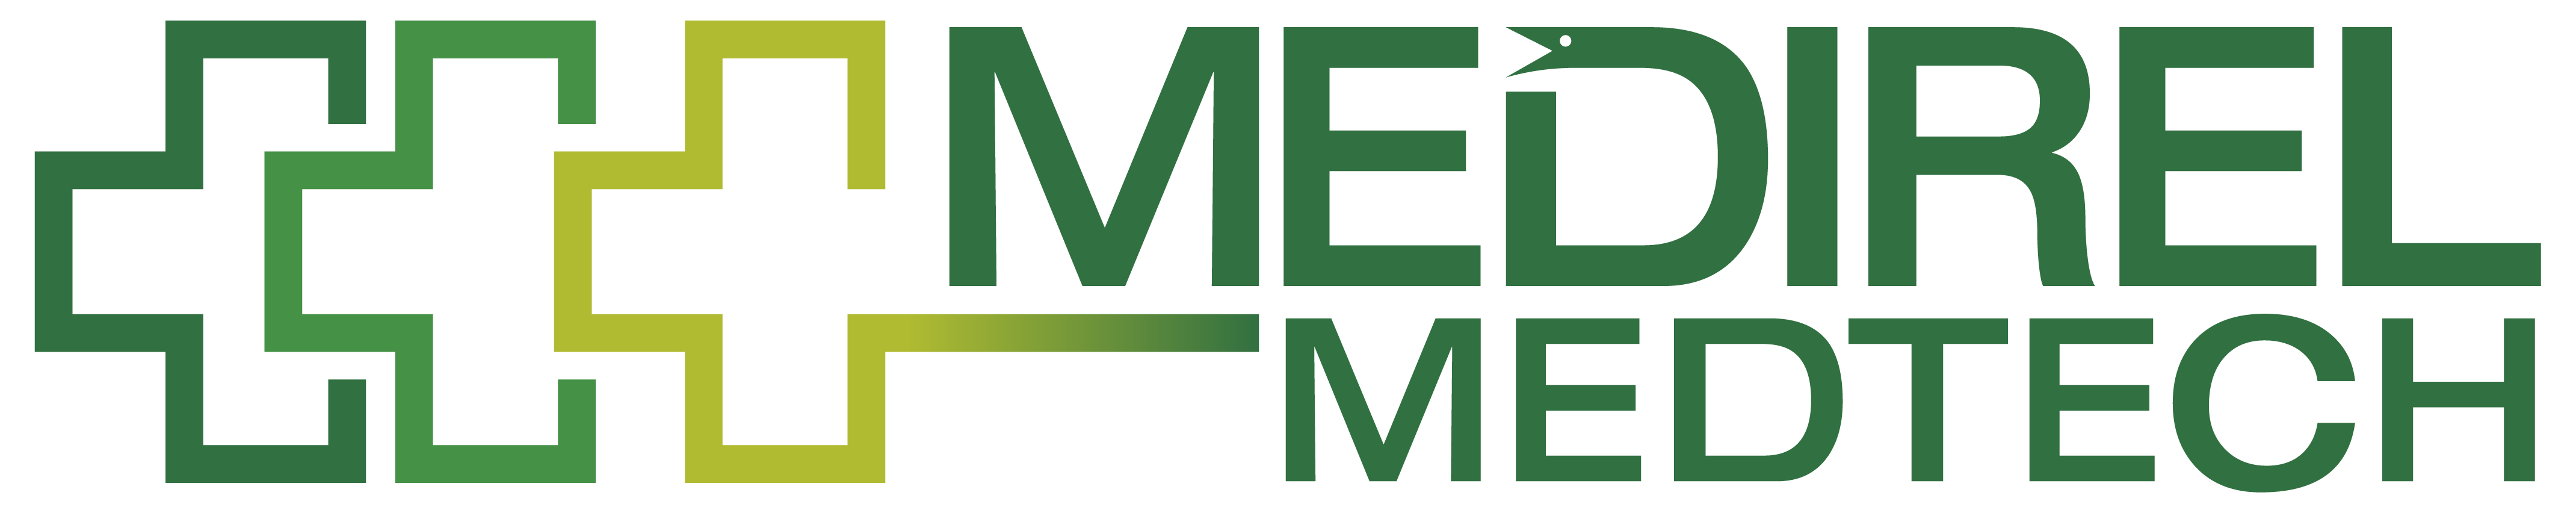 Medirel Medtech